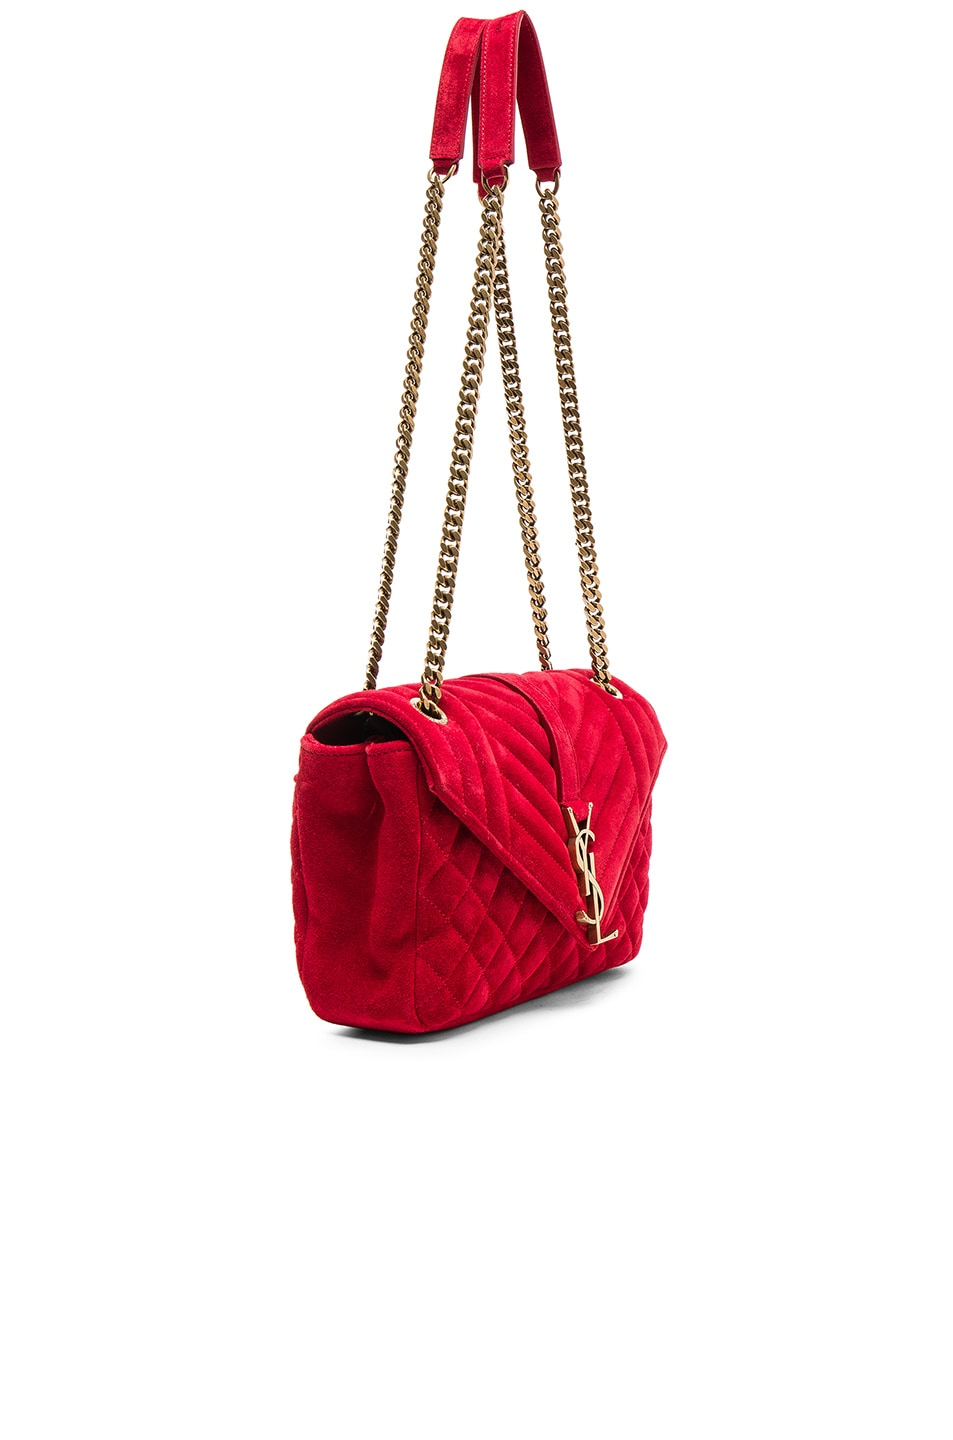 Image 3 of Saint Laurent Medium Monogram Slouchy Suede Chain Bag in Red 7c7c5f48800d9